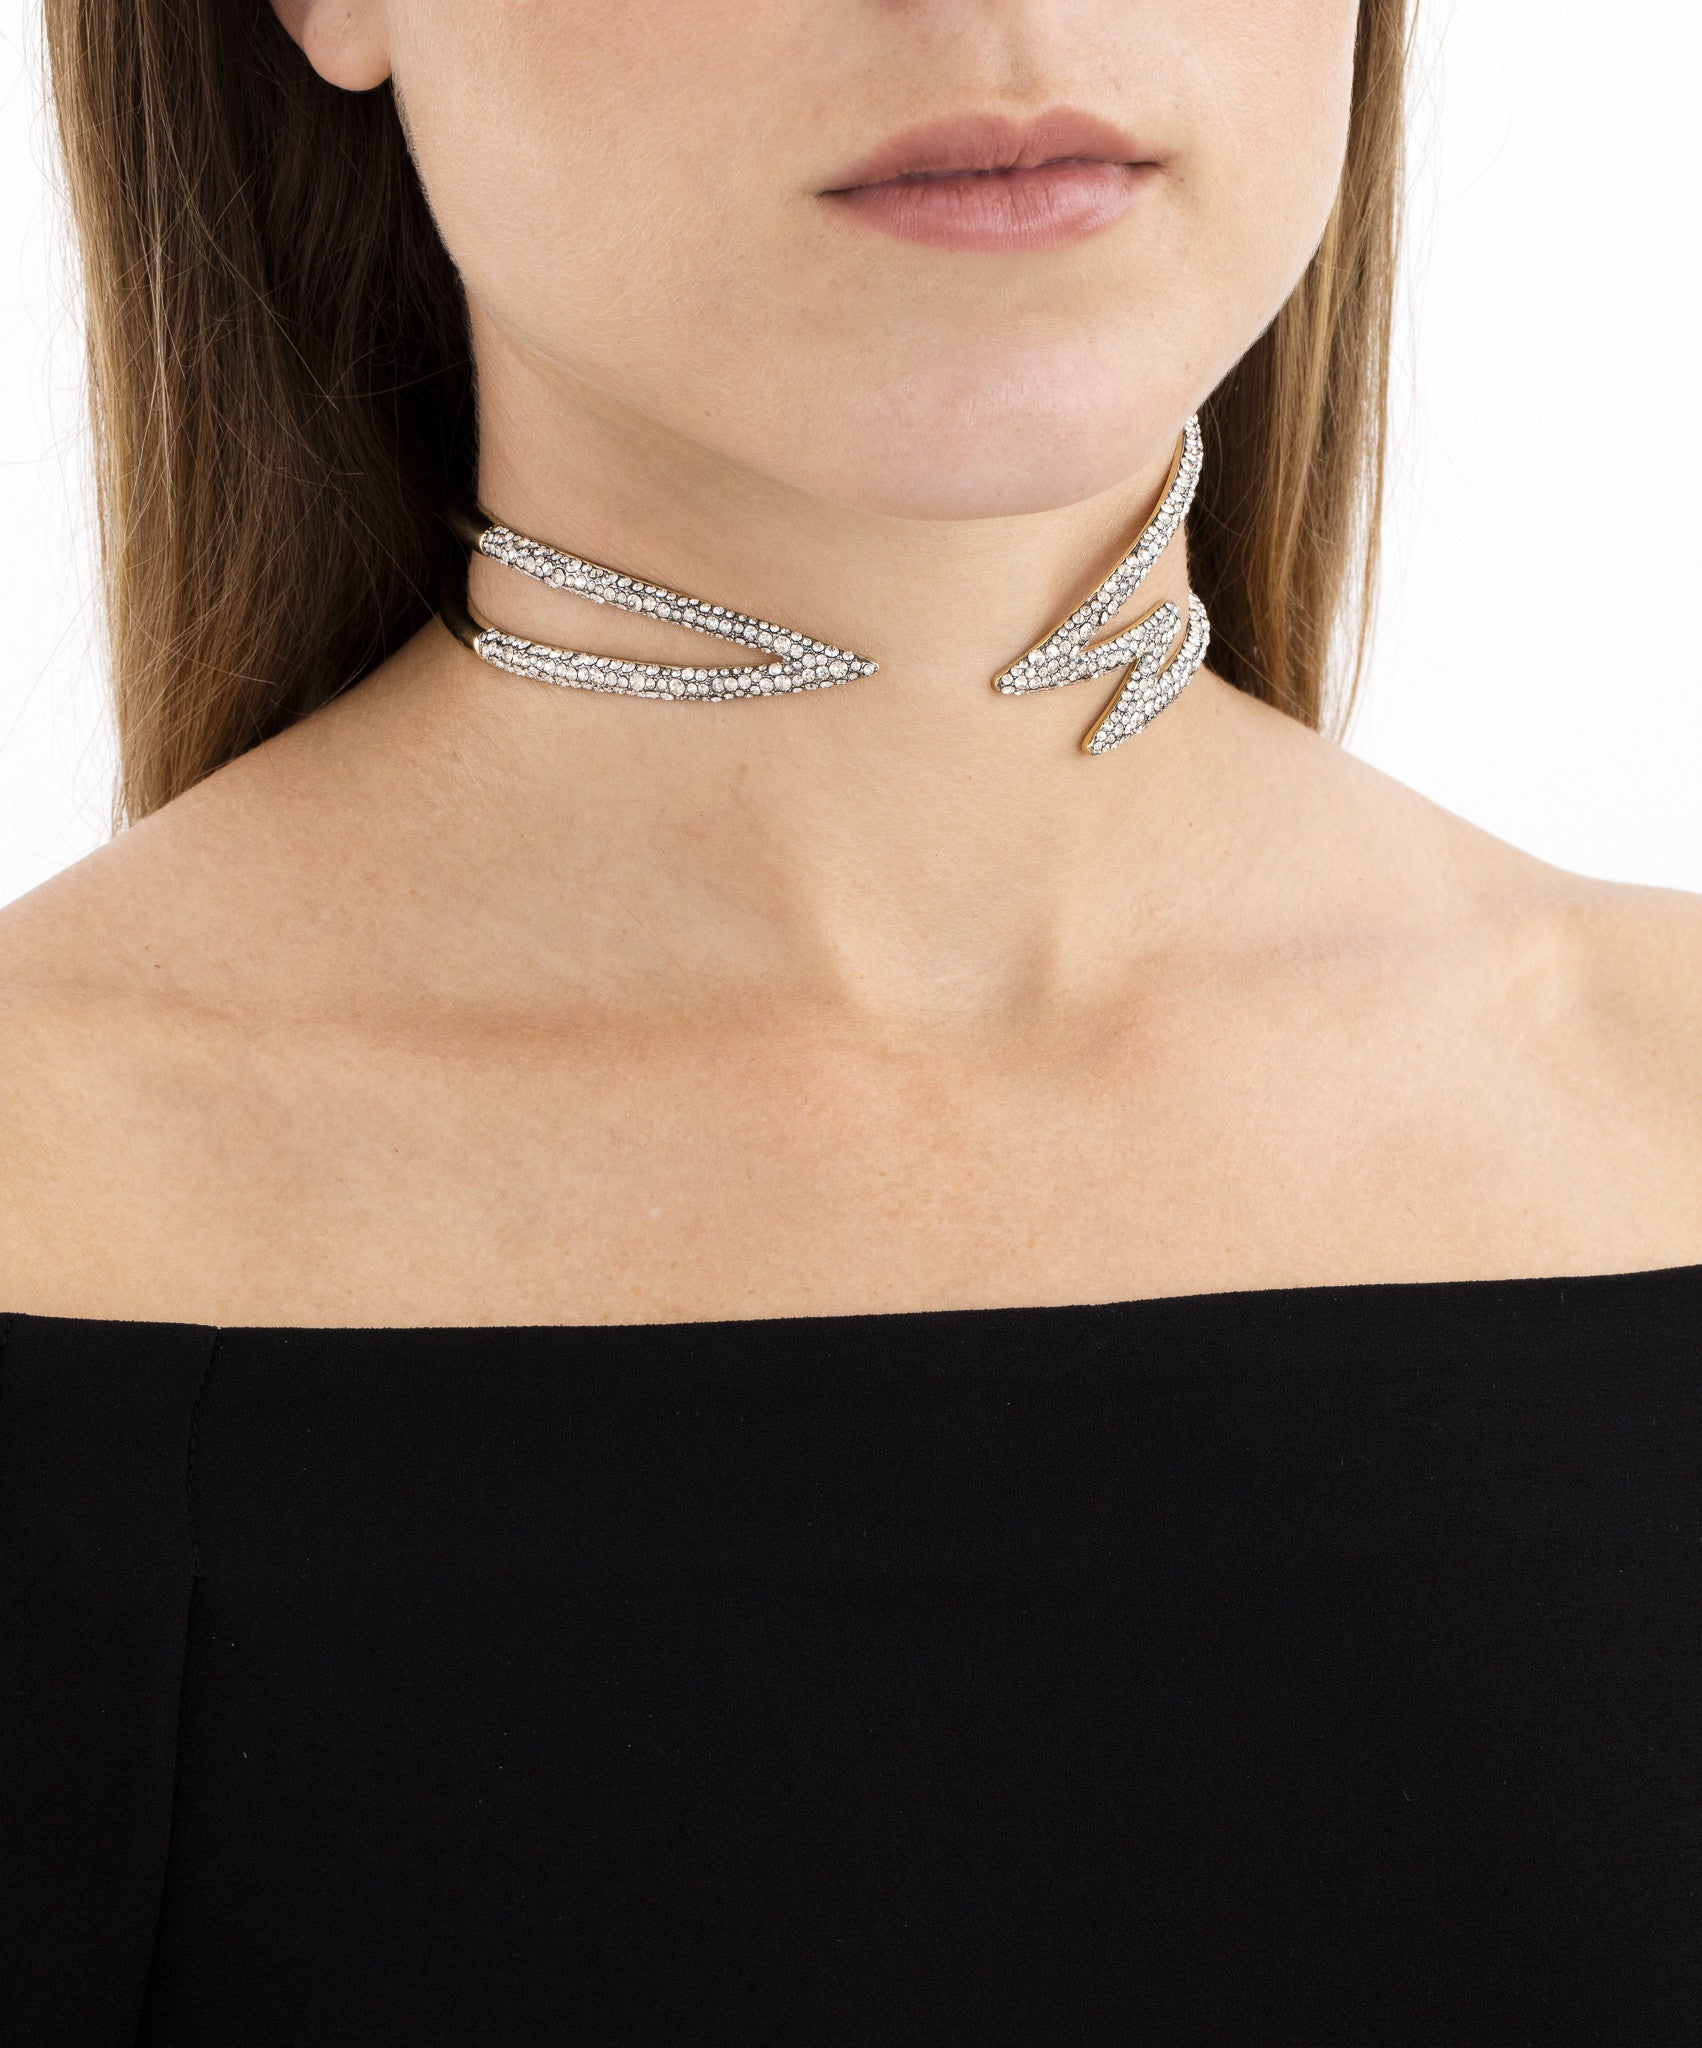 Spark Choker by Sarah Magid Jewelry